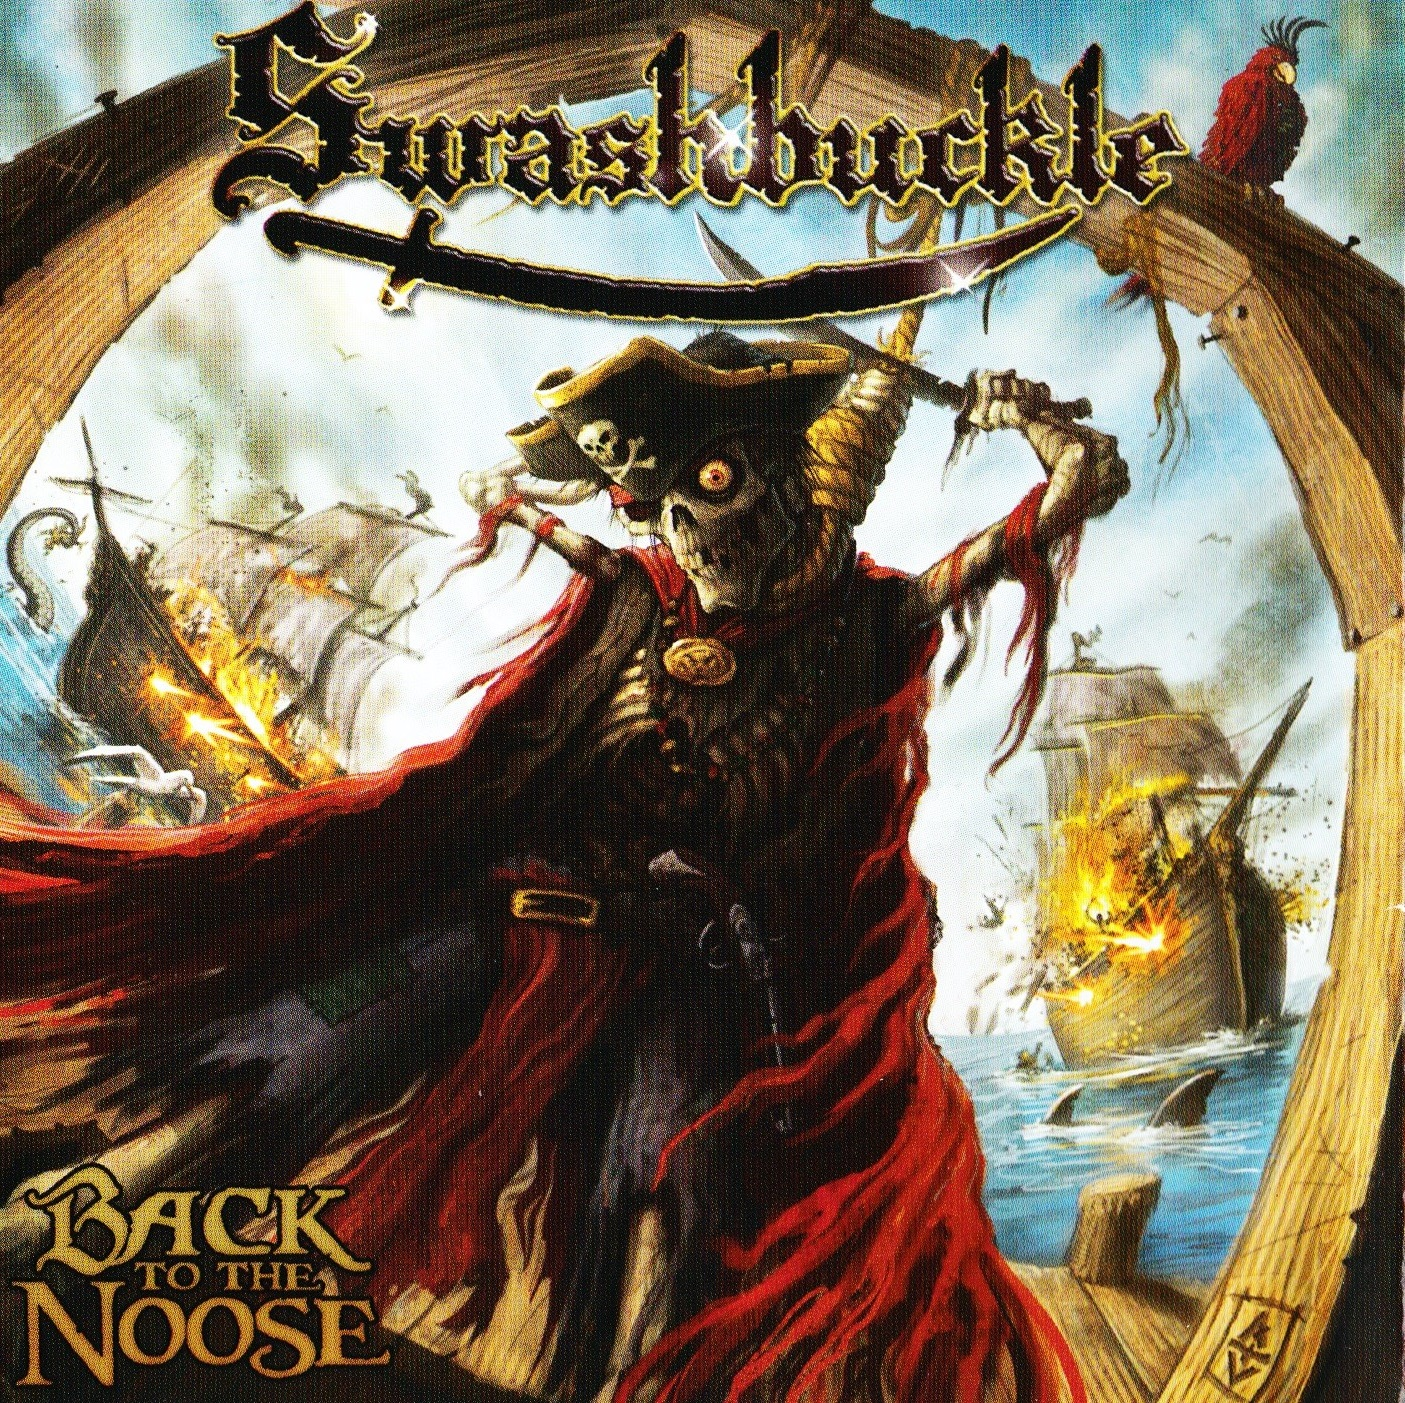 Swashbuckle — Back To The Noose (2009)